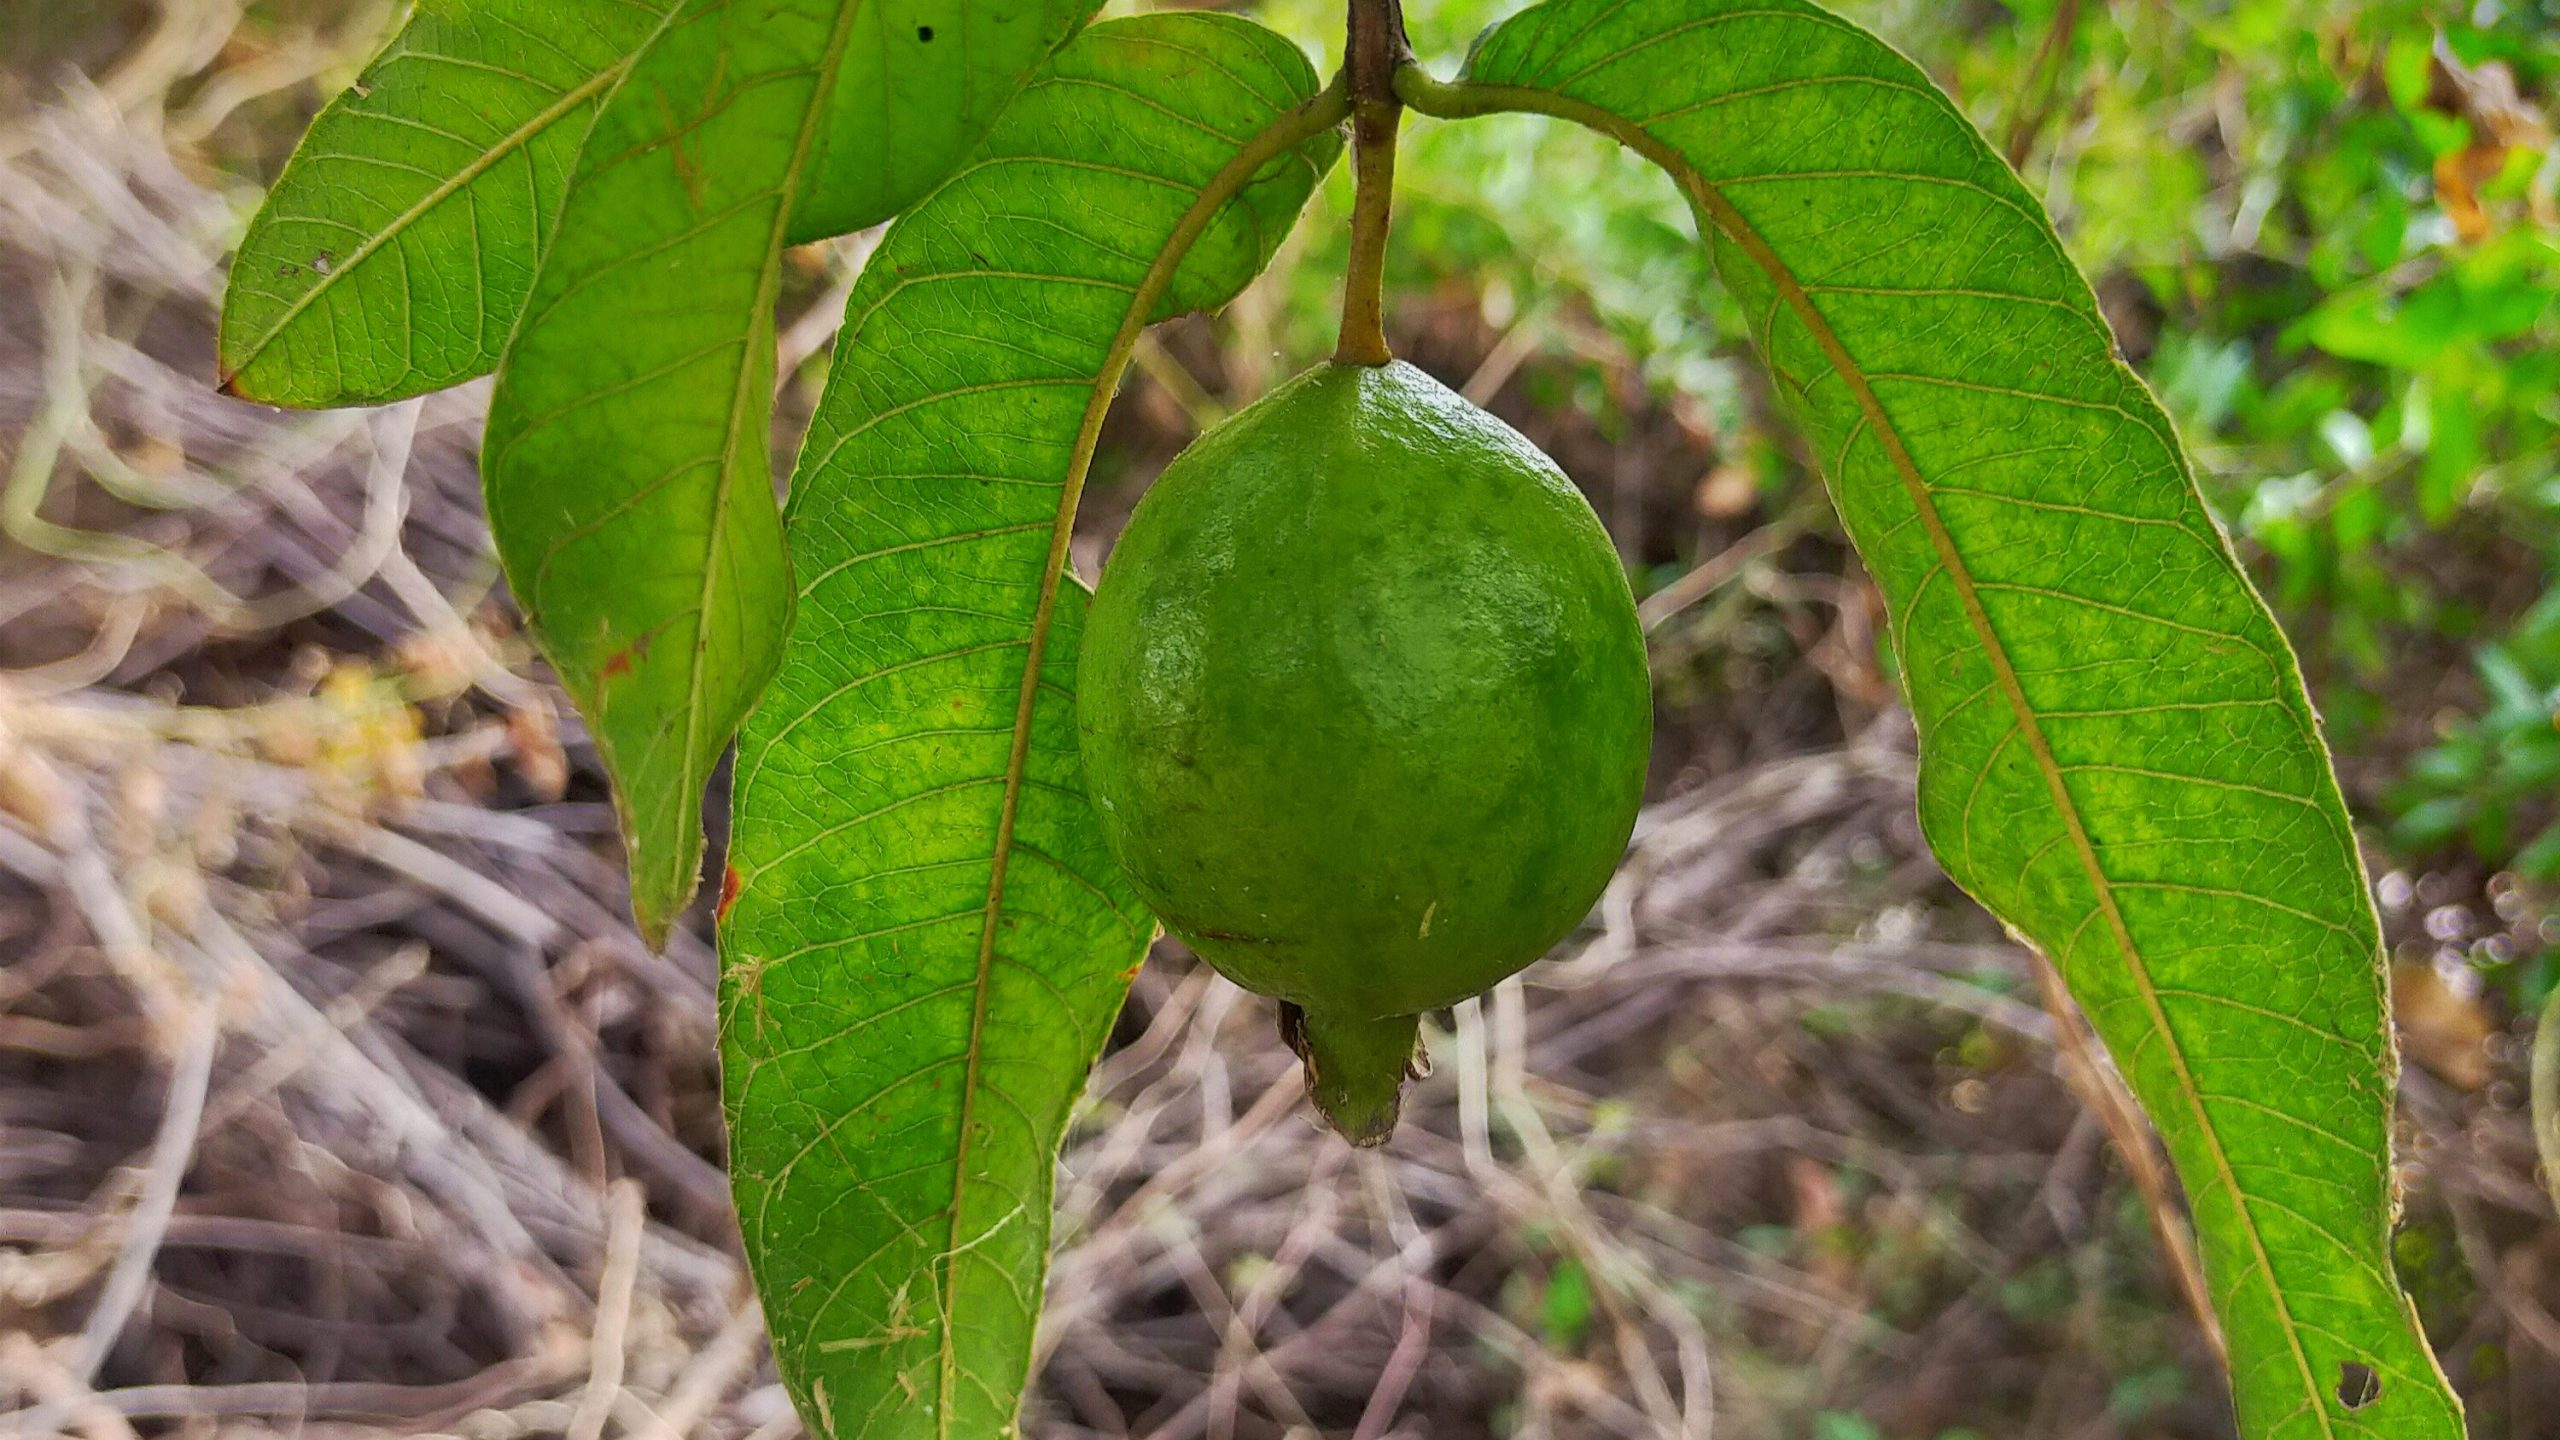 Guava fruit on its tree